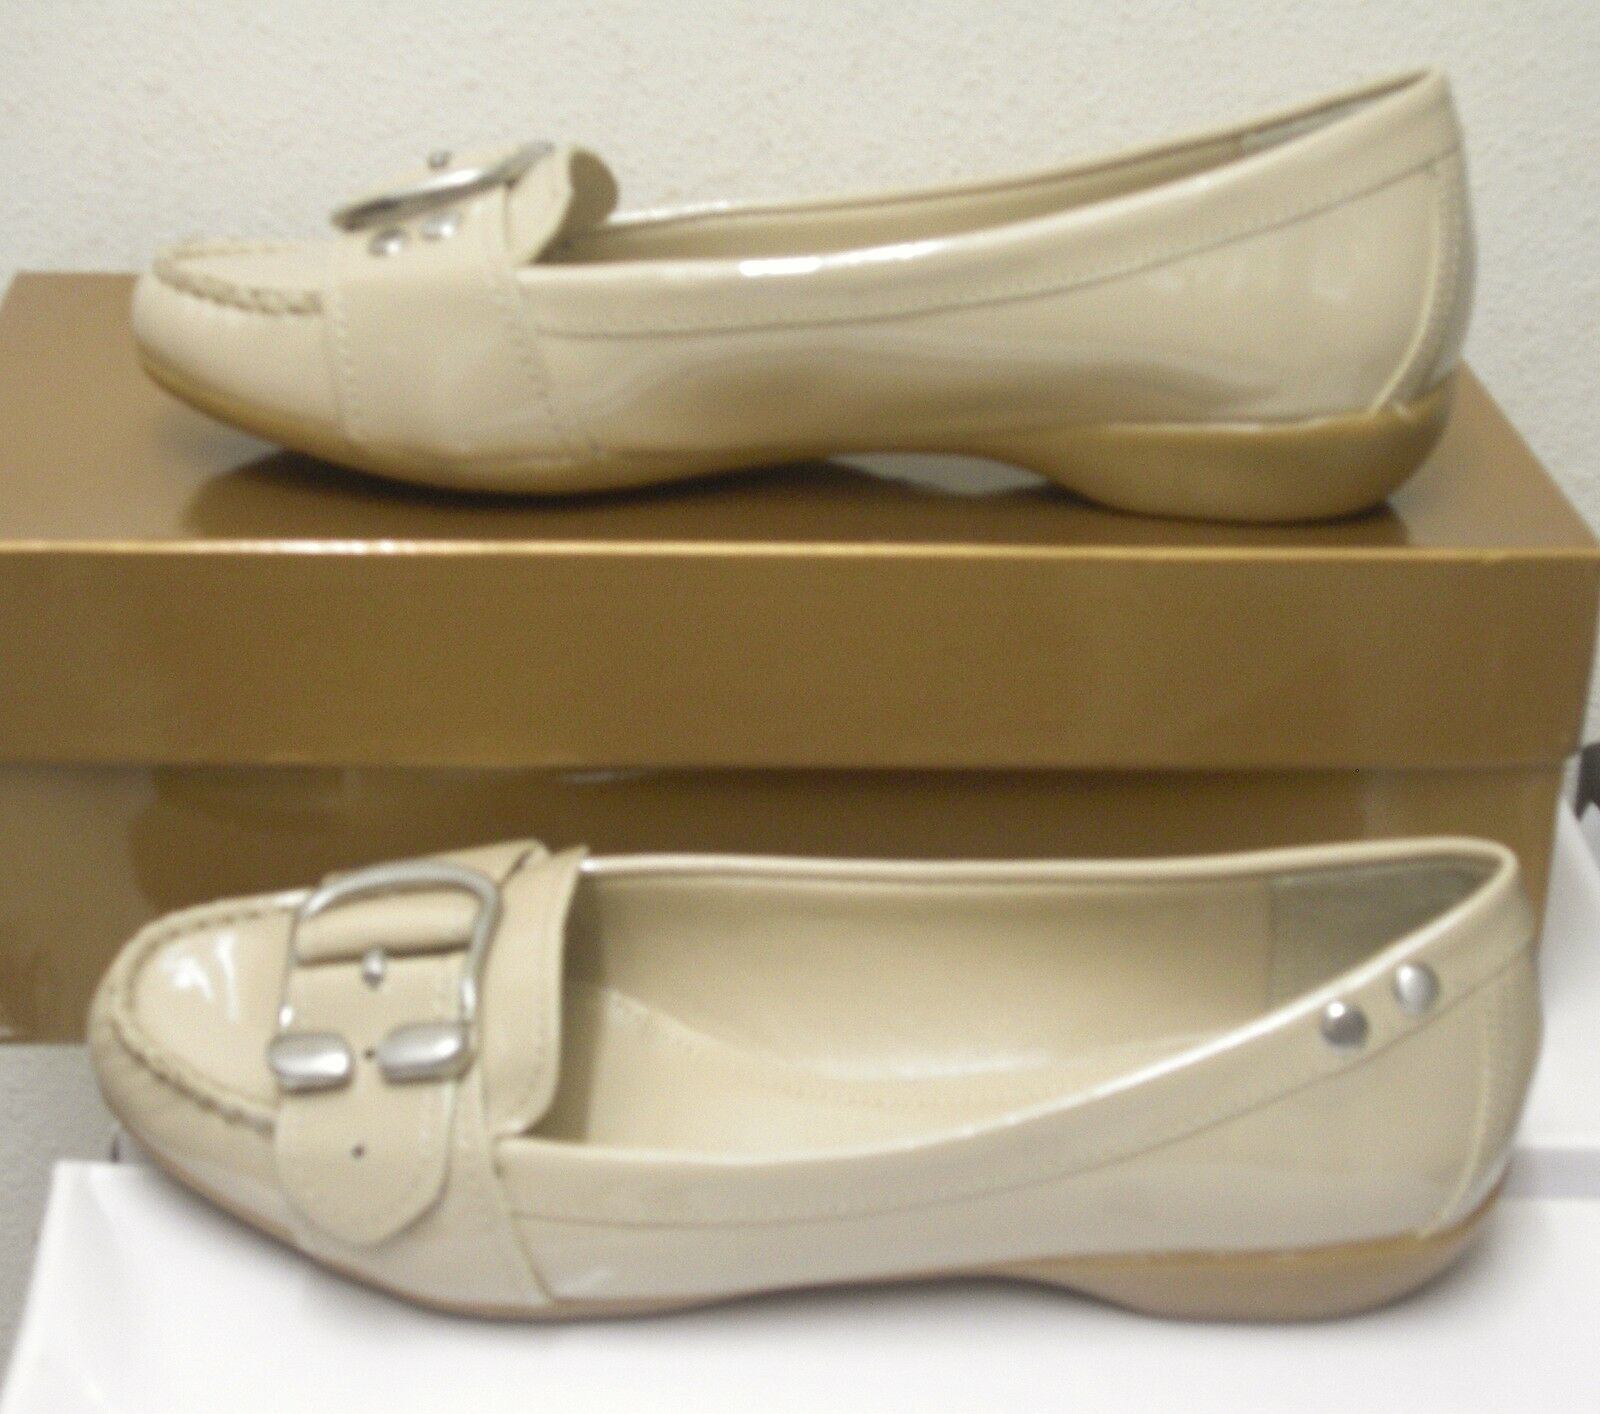 ELLEN TRACY TRACY TRACY (EB-BALDWIN PATENT LEATHER DESERT SAND ) SIZE 6.5 BRAND NEW a3eef0